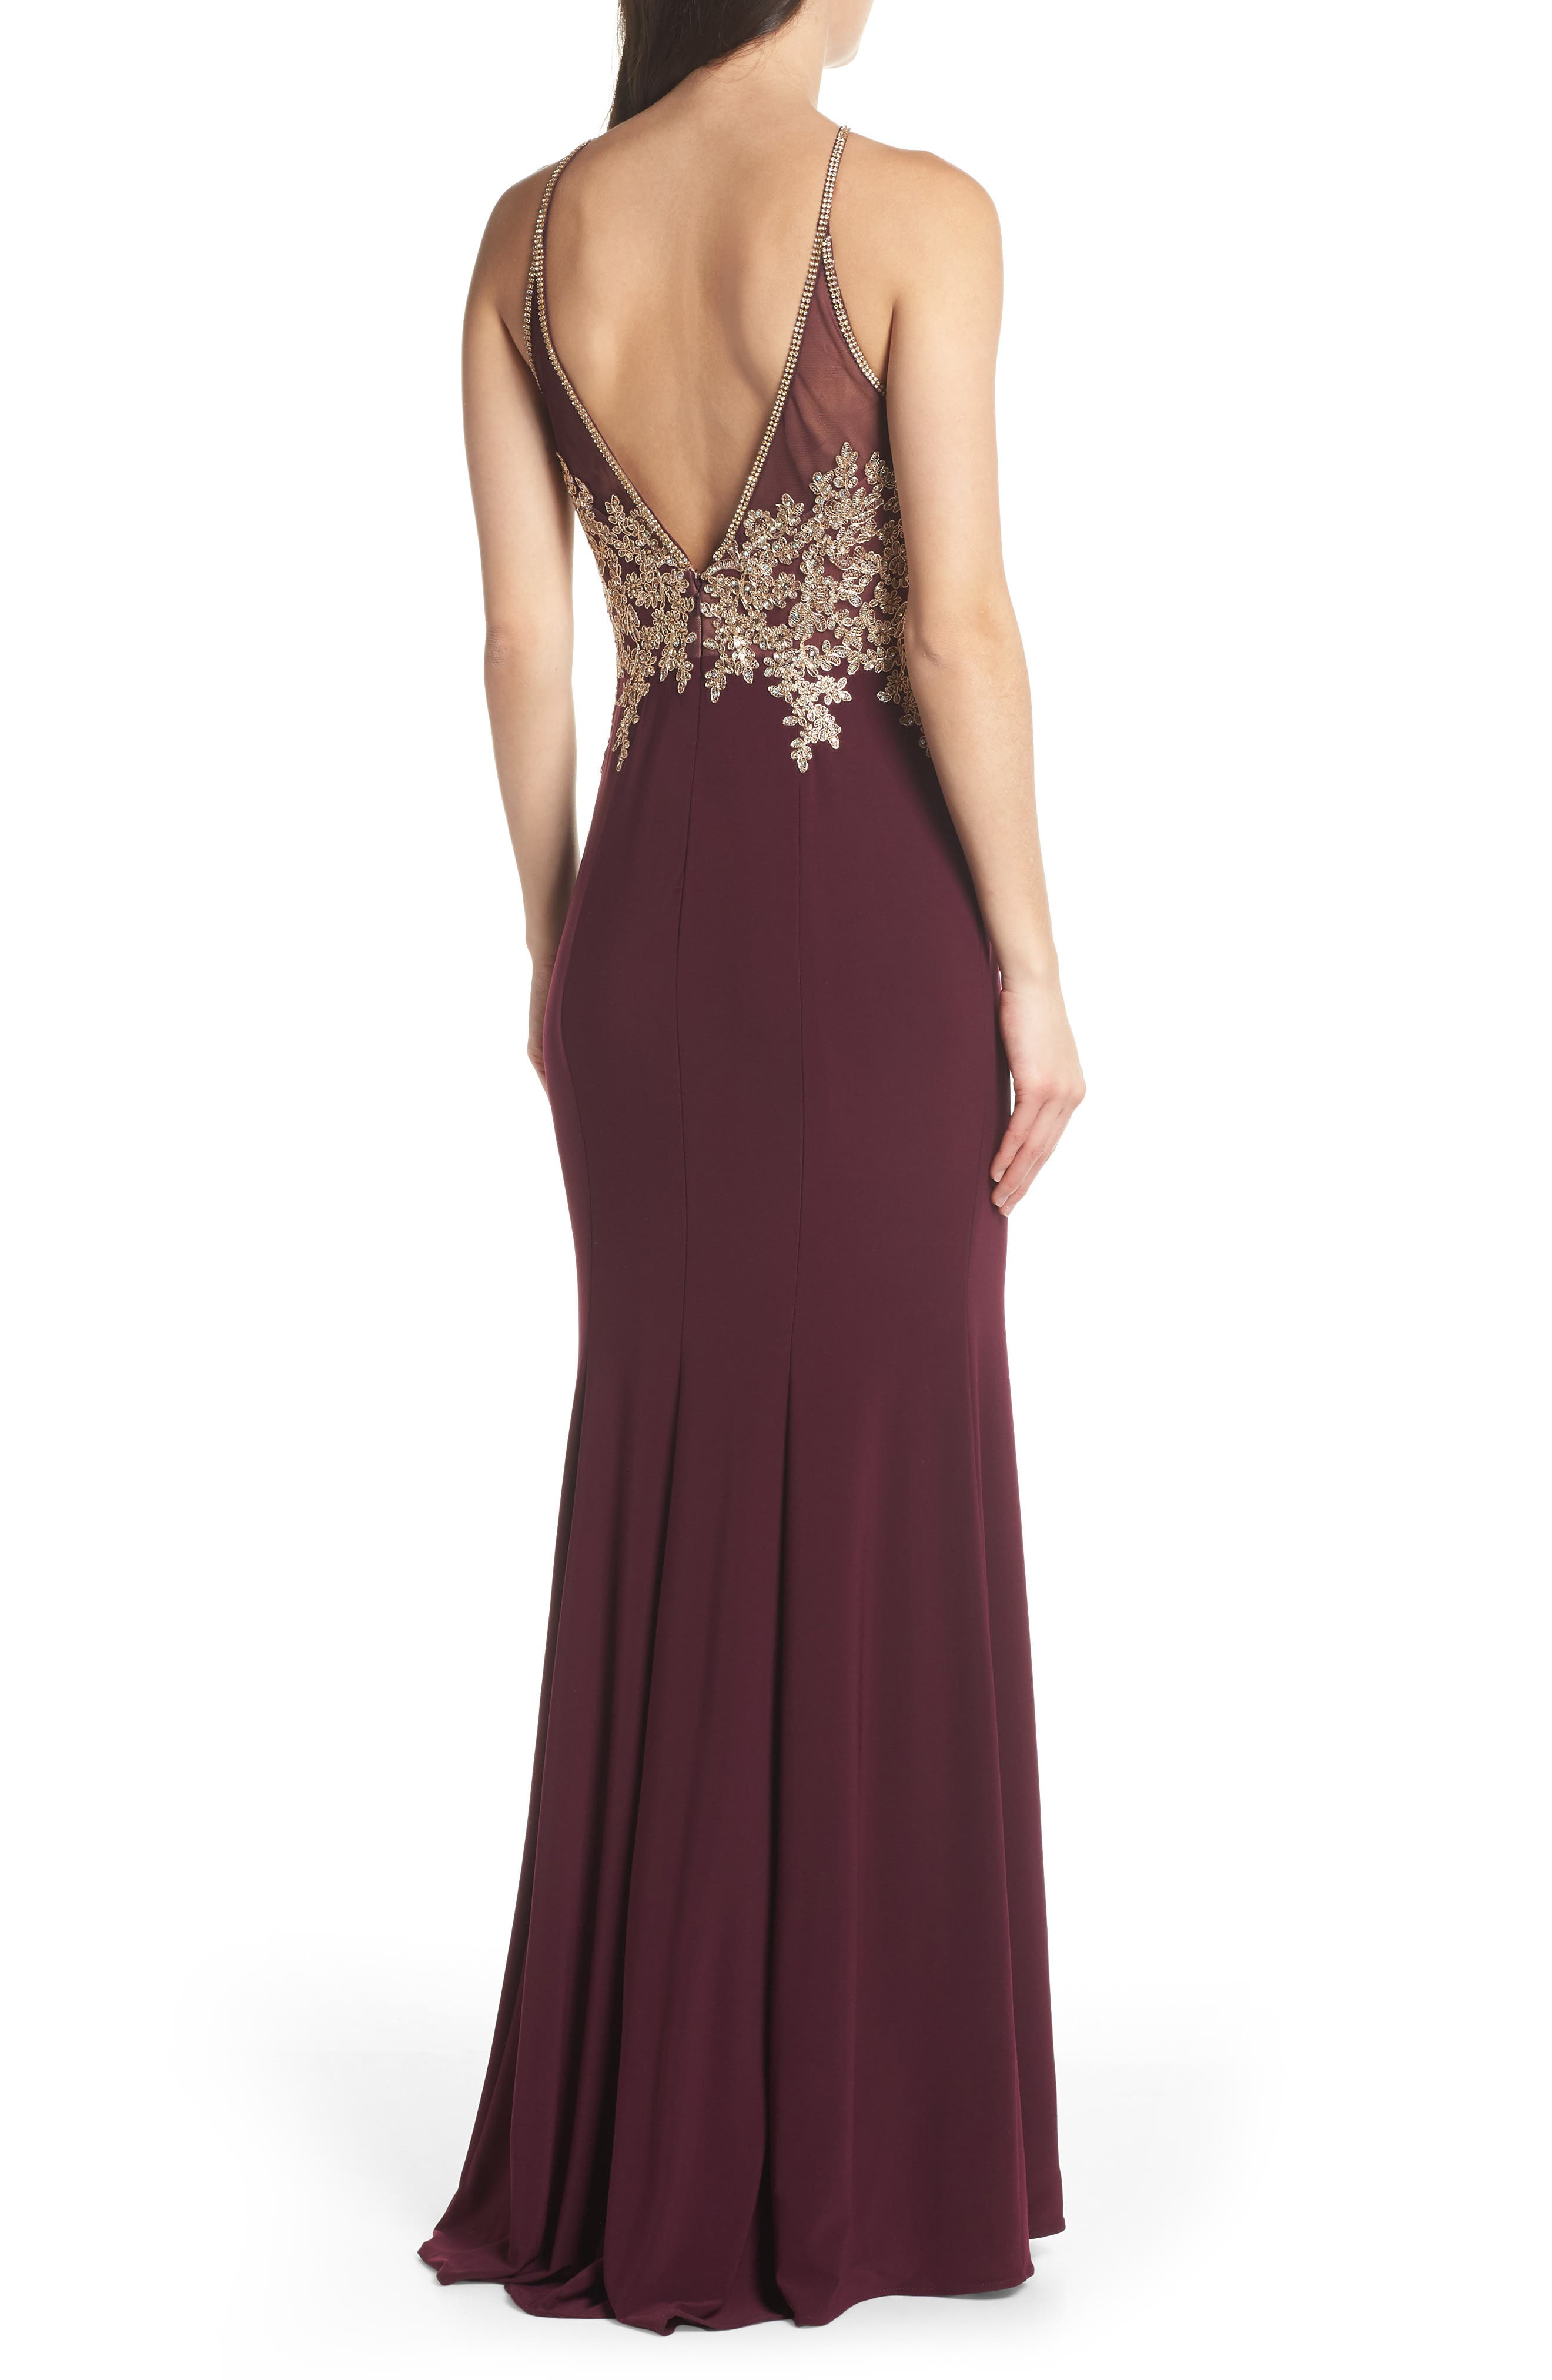 Gold Embroidery Halter Neck Gown,                             Alternate thumbnail 2, color,                             WINE/ GOLD